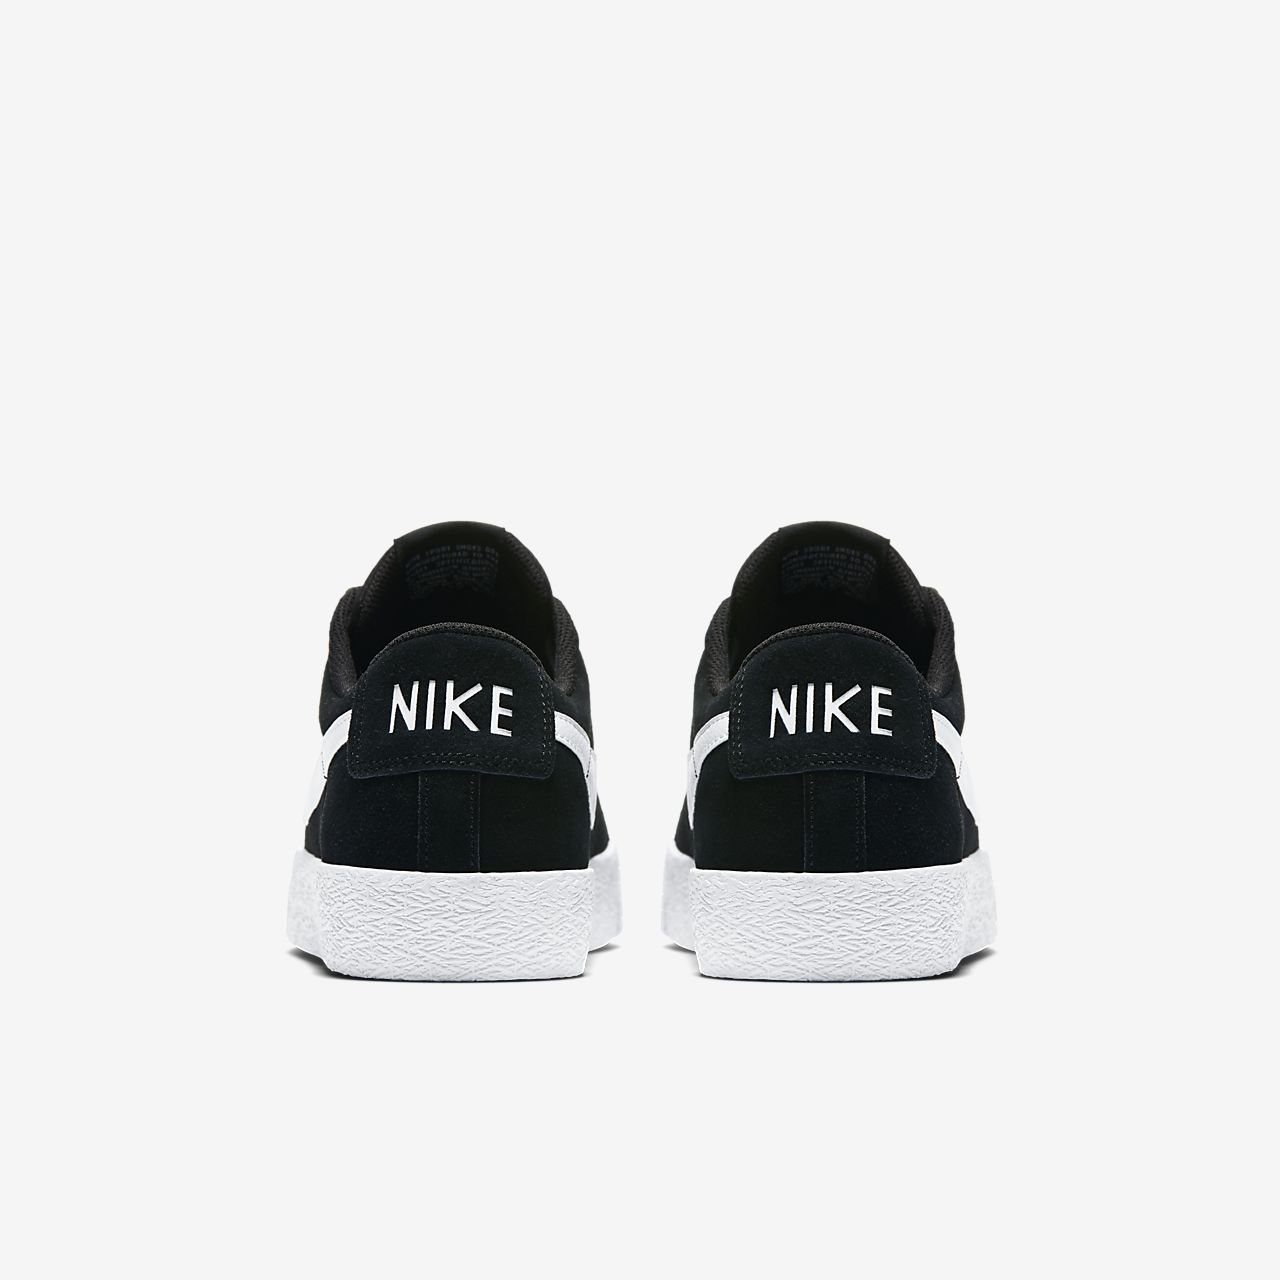 reputable site f844b d40c1 ... Nike SB Blazer Zoom Low Mens Skateboarding Shoe